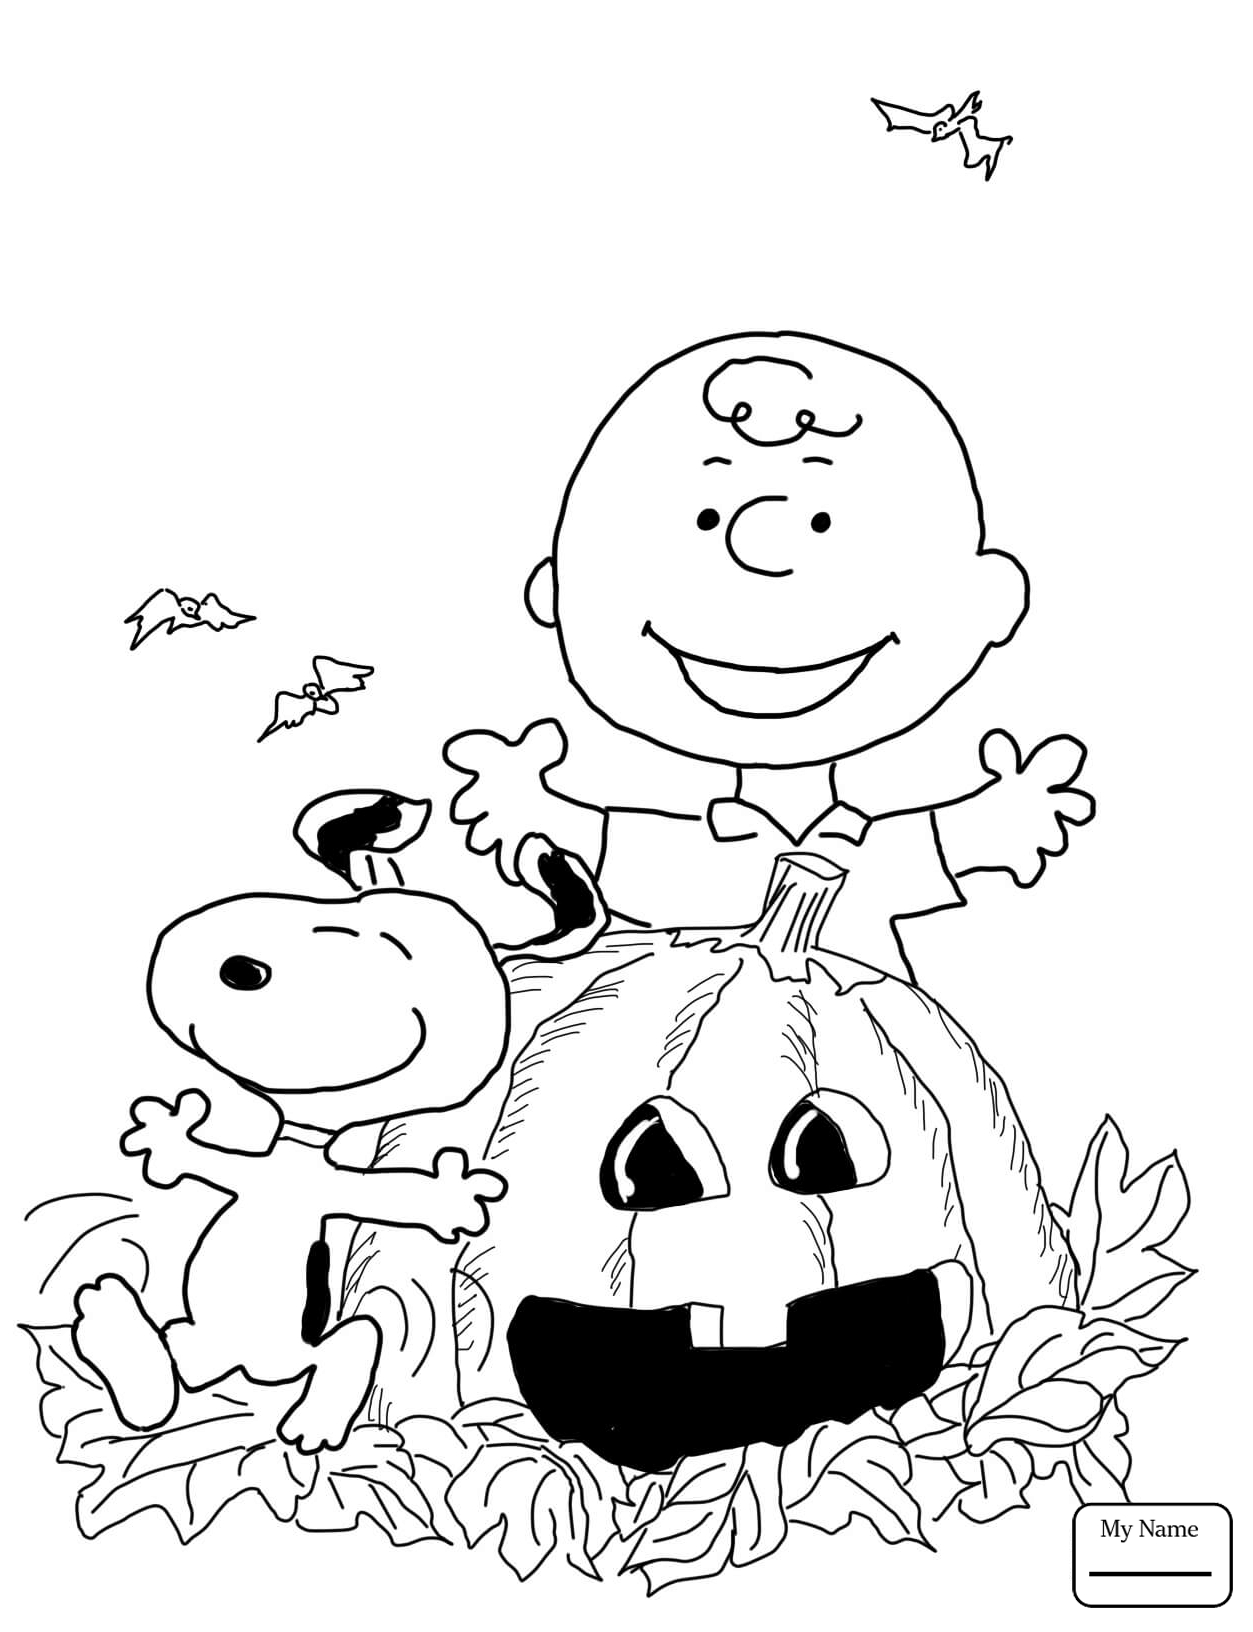 Peanuts Drawing at GetDrawings